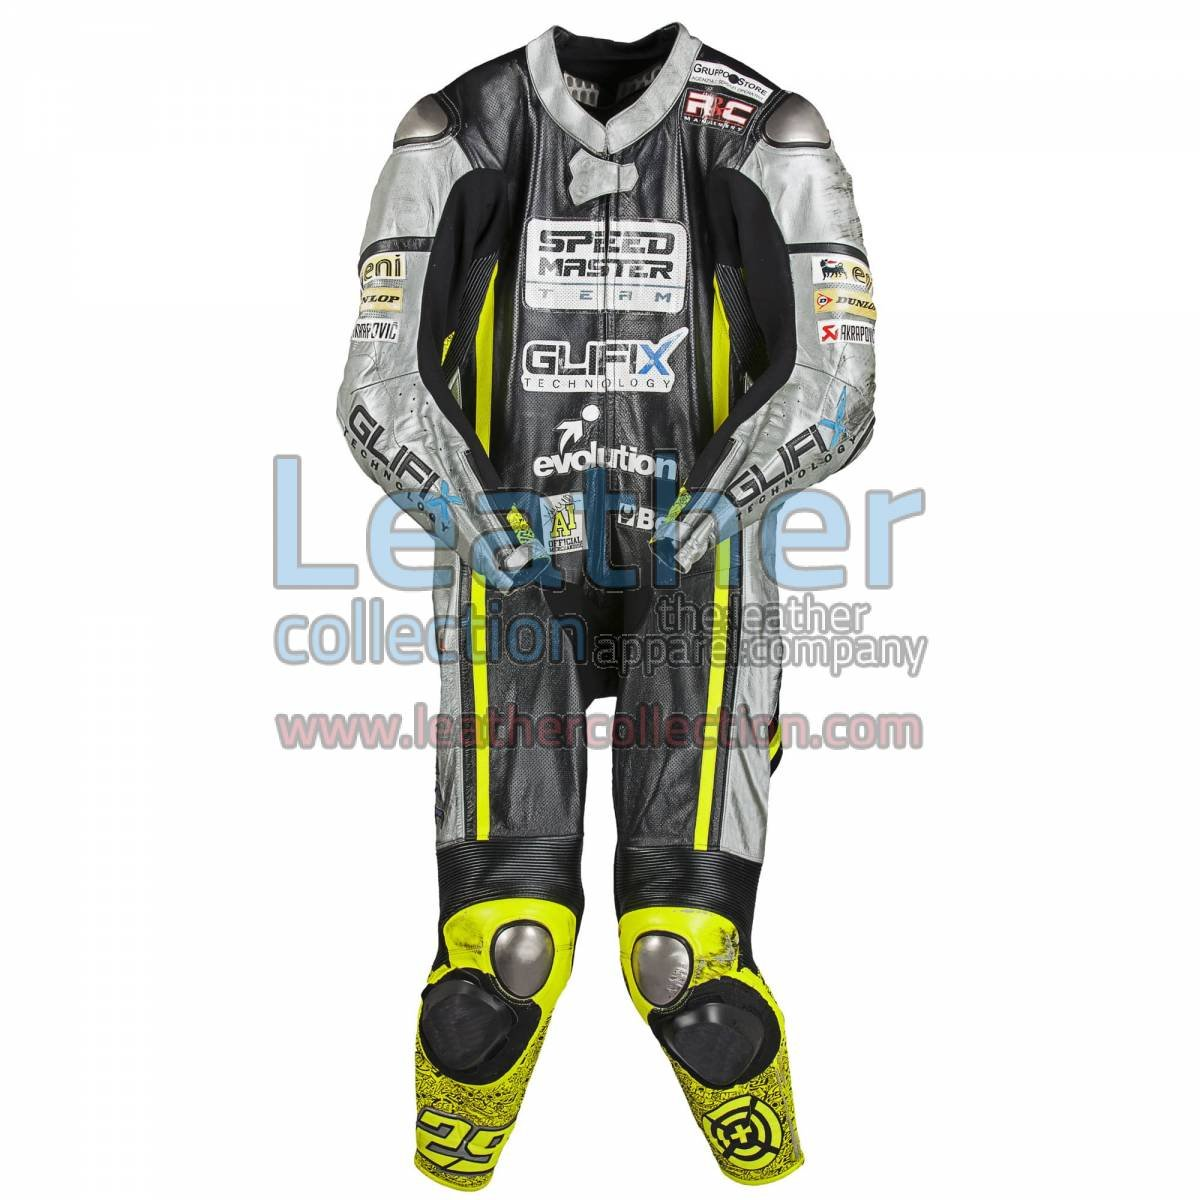 Andrea Iannone Speed UP 2012 Racing Suit